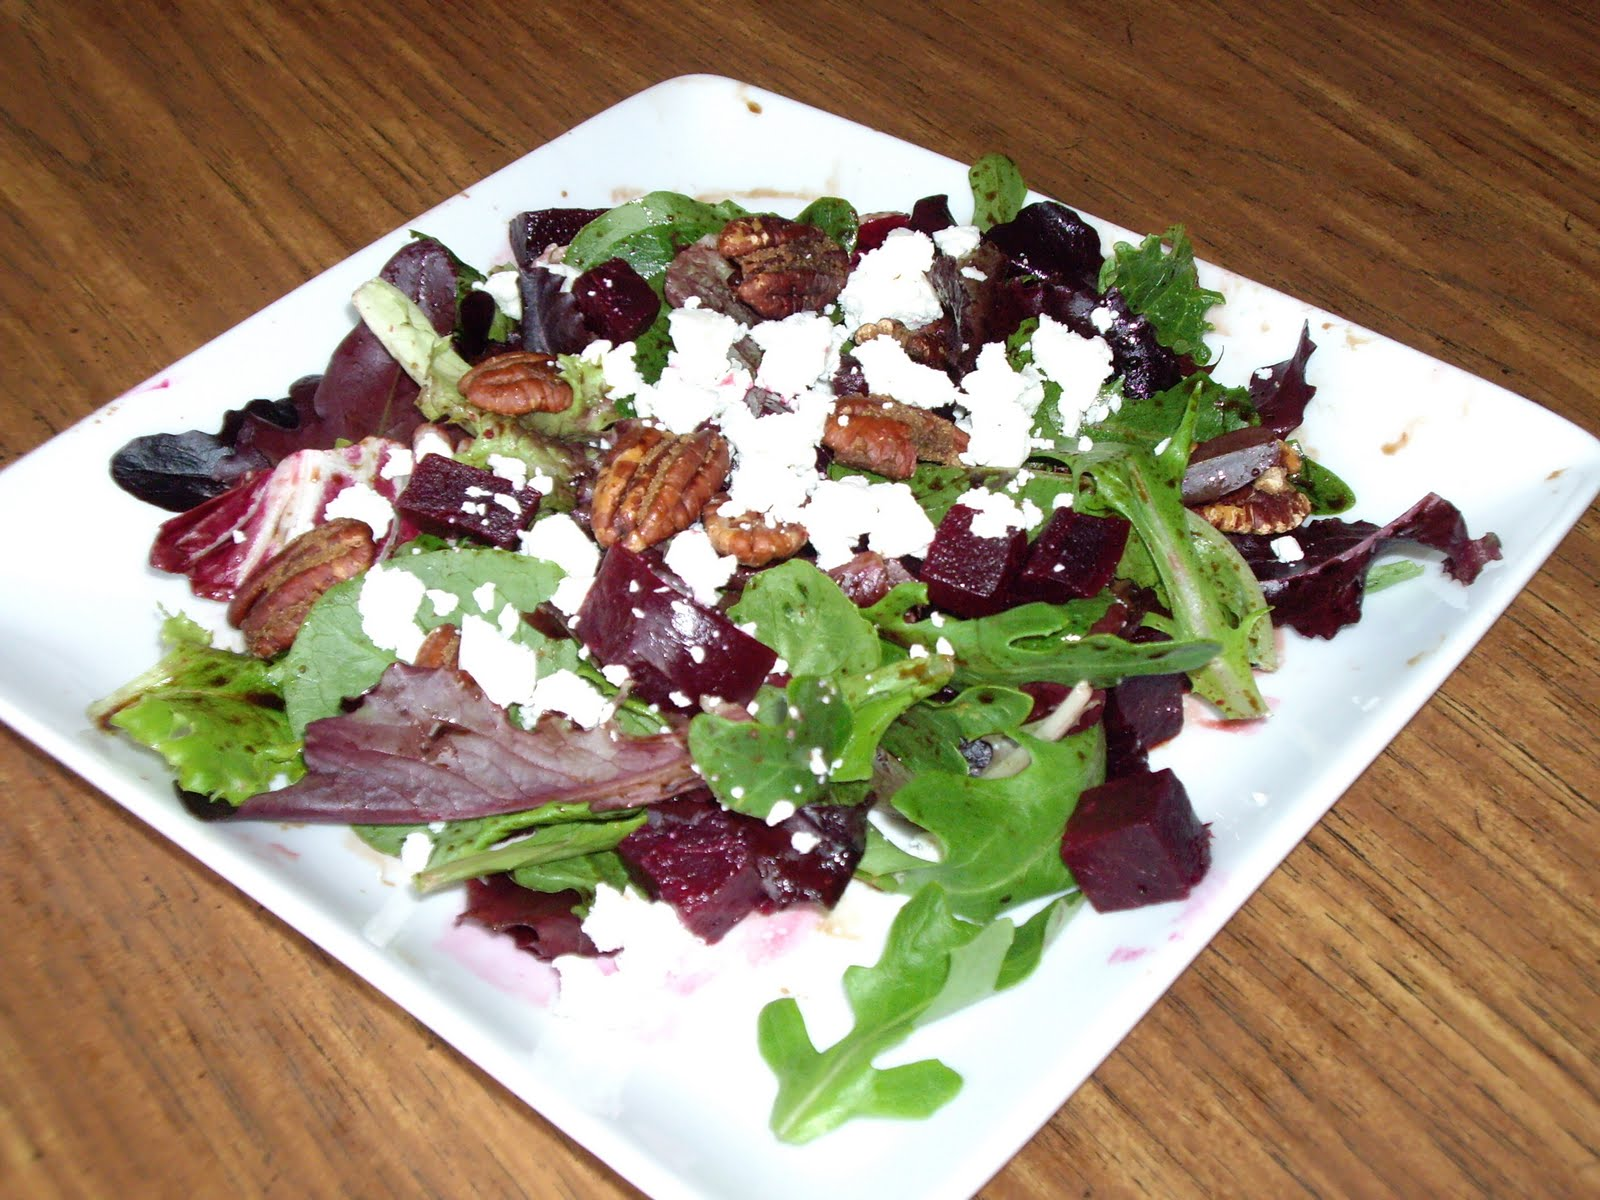 ... Peckish?: Green salad with beets, goat cheese, and candied pecans